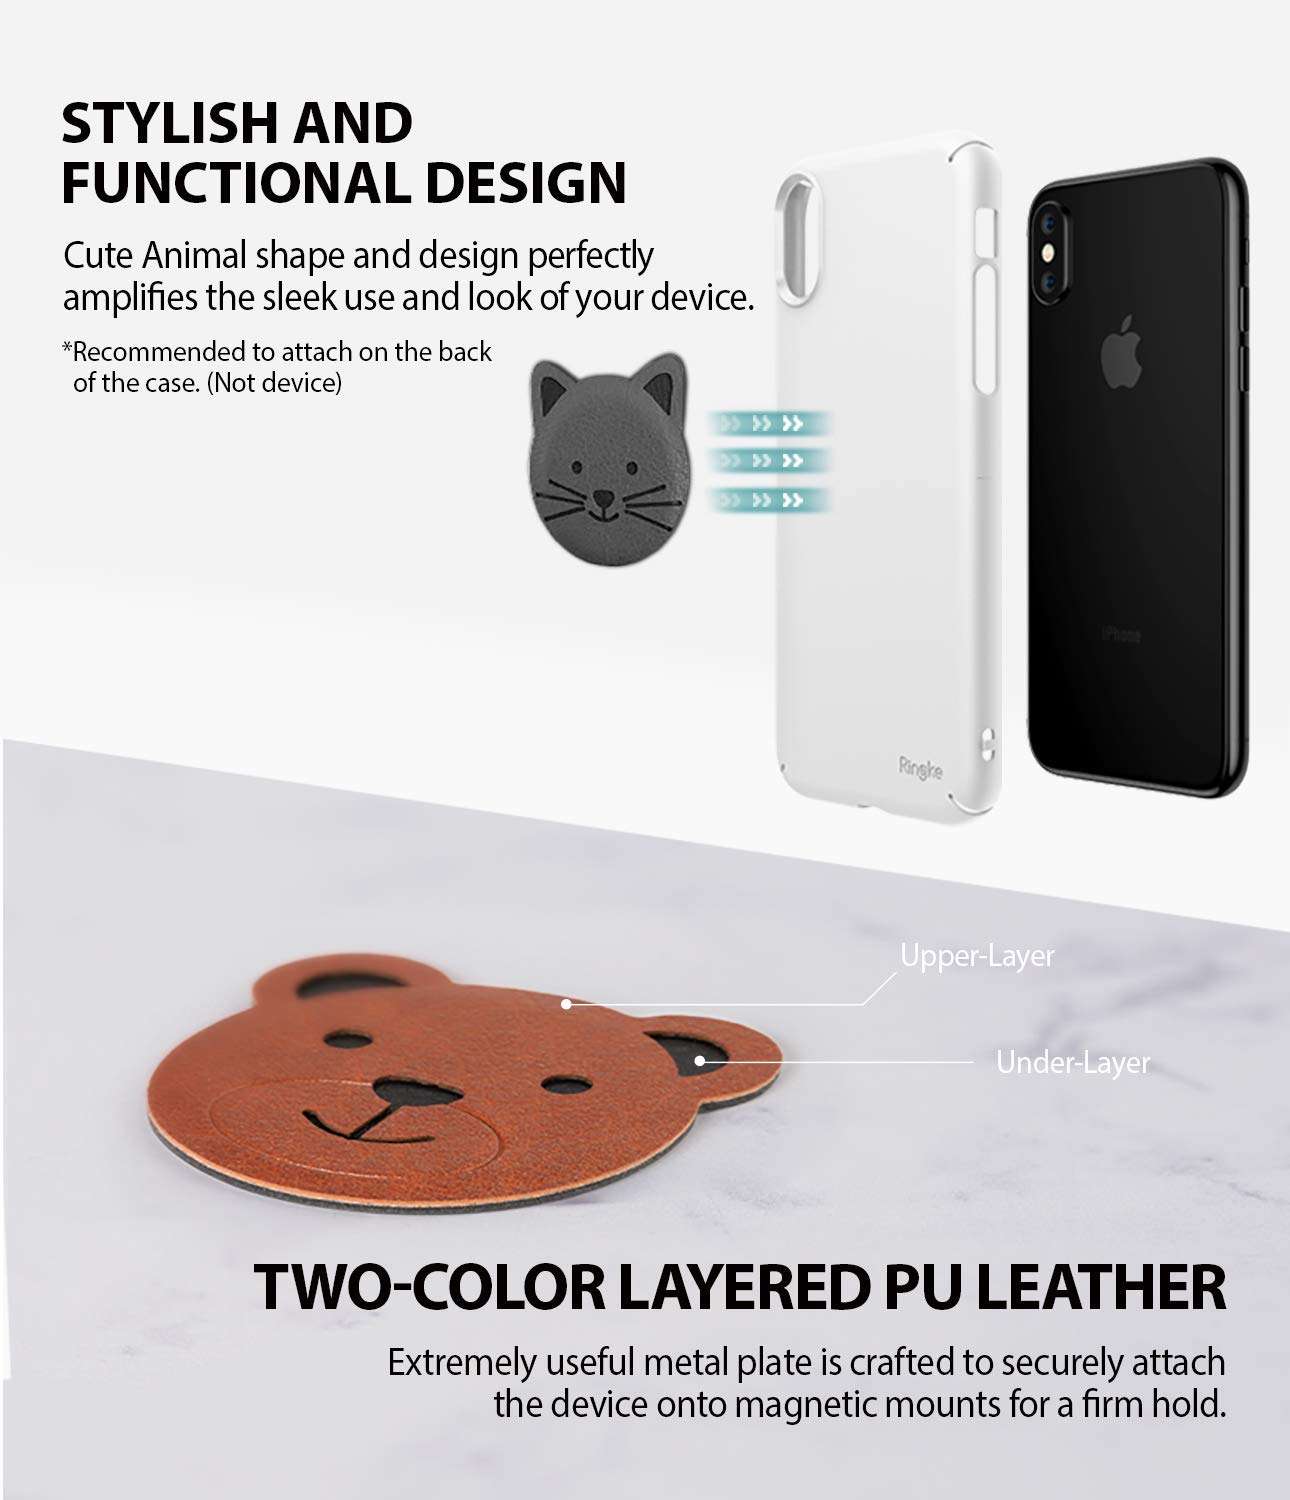 ringke magnetic character metal plate kit animal edition stylish and functional design with two color layered pu leather